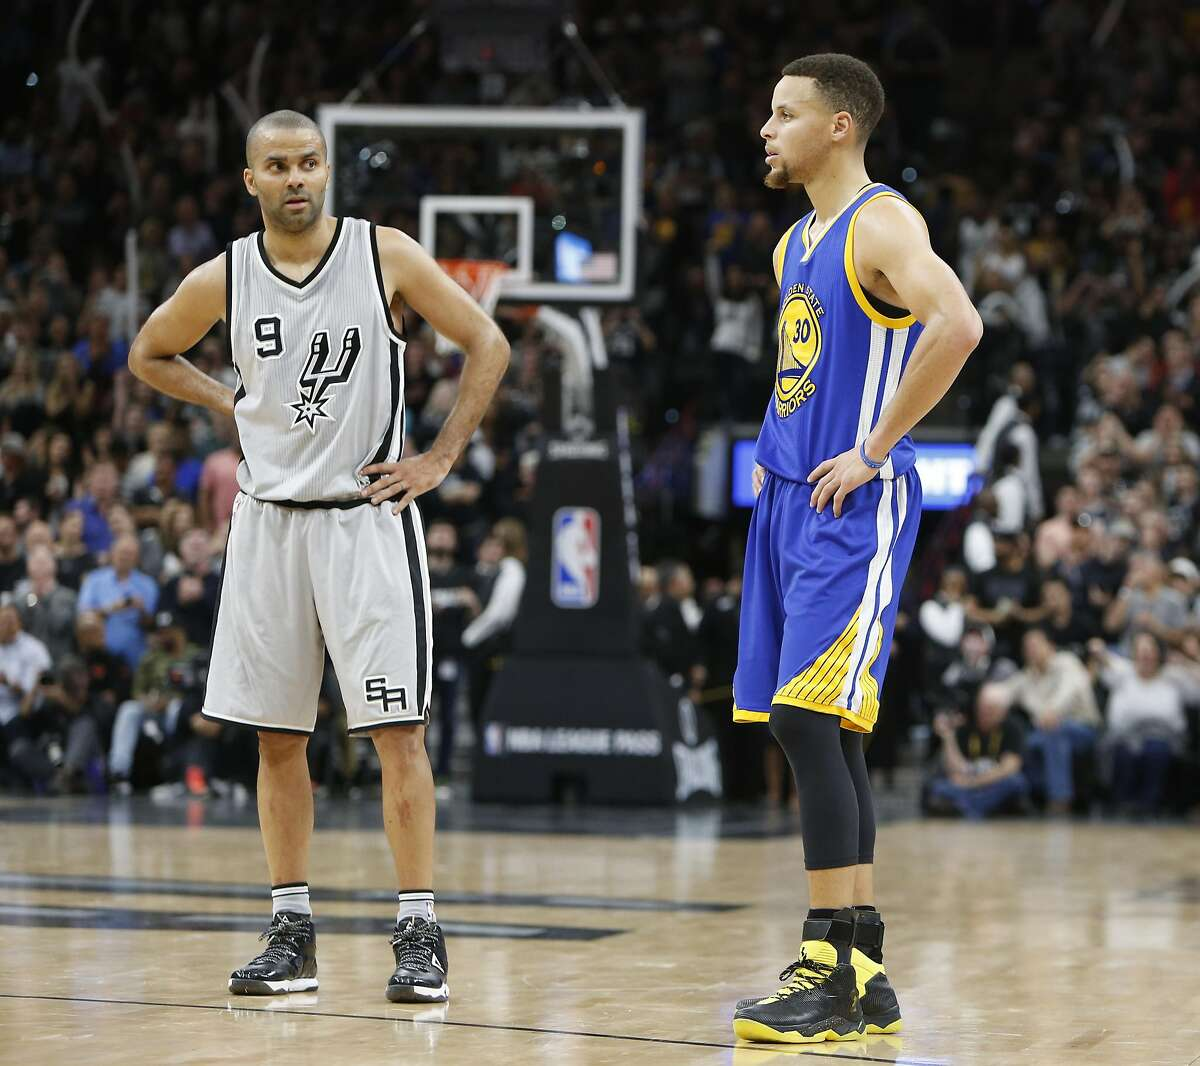 SAN ANTONIO, TX - MARCH 19: As the seconds tick off Tony Parker #9 of the San Antonio Spurs stand next to Stephen Curry #30 of the Golden States Warriors at AT&T Center on March 19, 2016 in San Antonio, Texas. NOTE TO USER: User expressly acknowledges and agrees that , by downloading and or using this photograph, User is consenting to the terms and conditions of the Getty Images License Agreement. (Photo by Ronald Cortes/Getty Images)